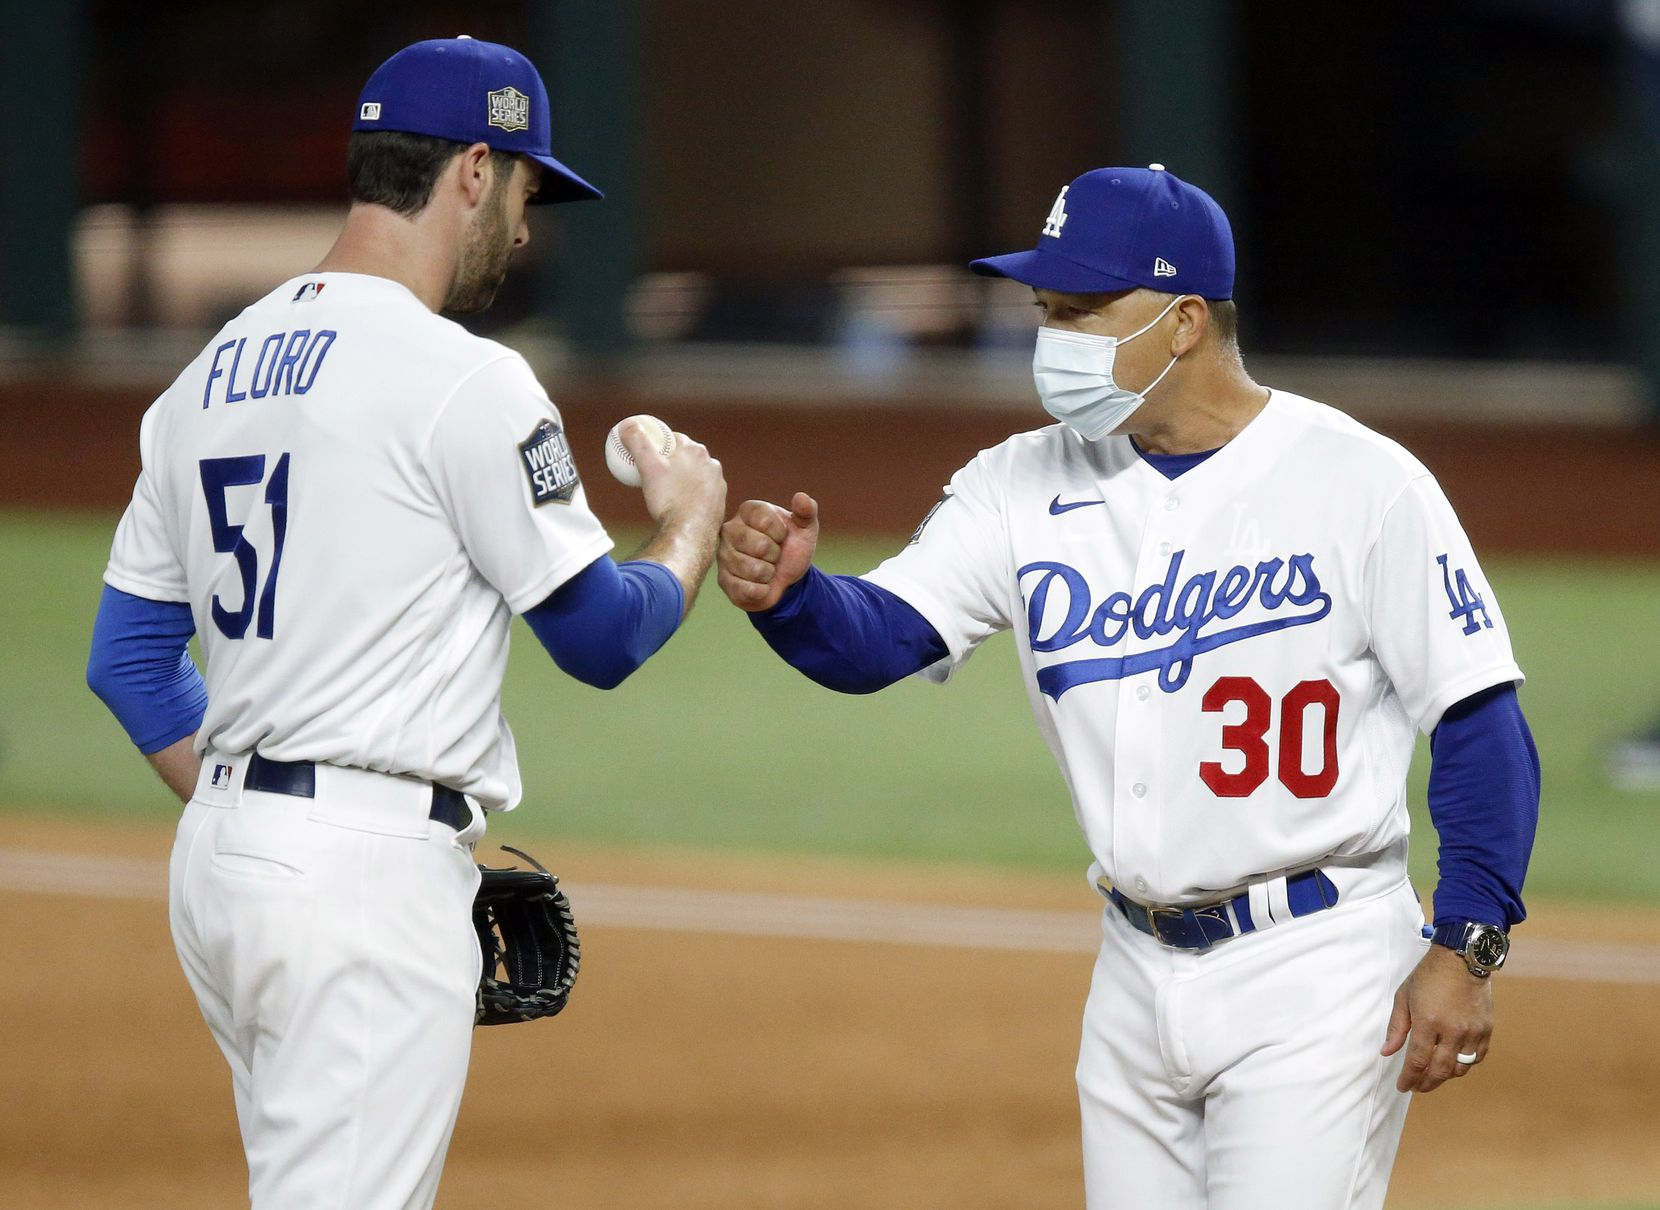 Los Angeles Dodgers manager Dave Roberts gives relief pitcher Dylan Floro (51) a fist bump as he pulls him from the game during the third inning against the Tampa Bay Rays in Game 2 of the World Series at Globe Life Field in Arlington, Wednesday, October 21, 2020. (Tom Fox/The Dallas Morning News)